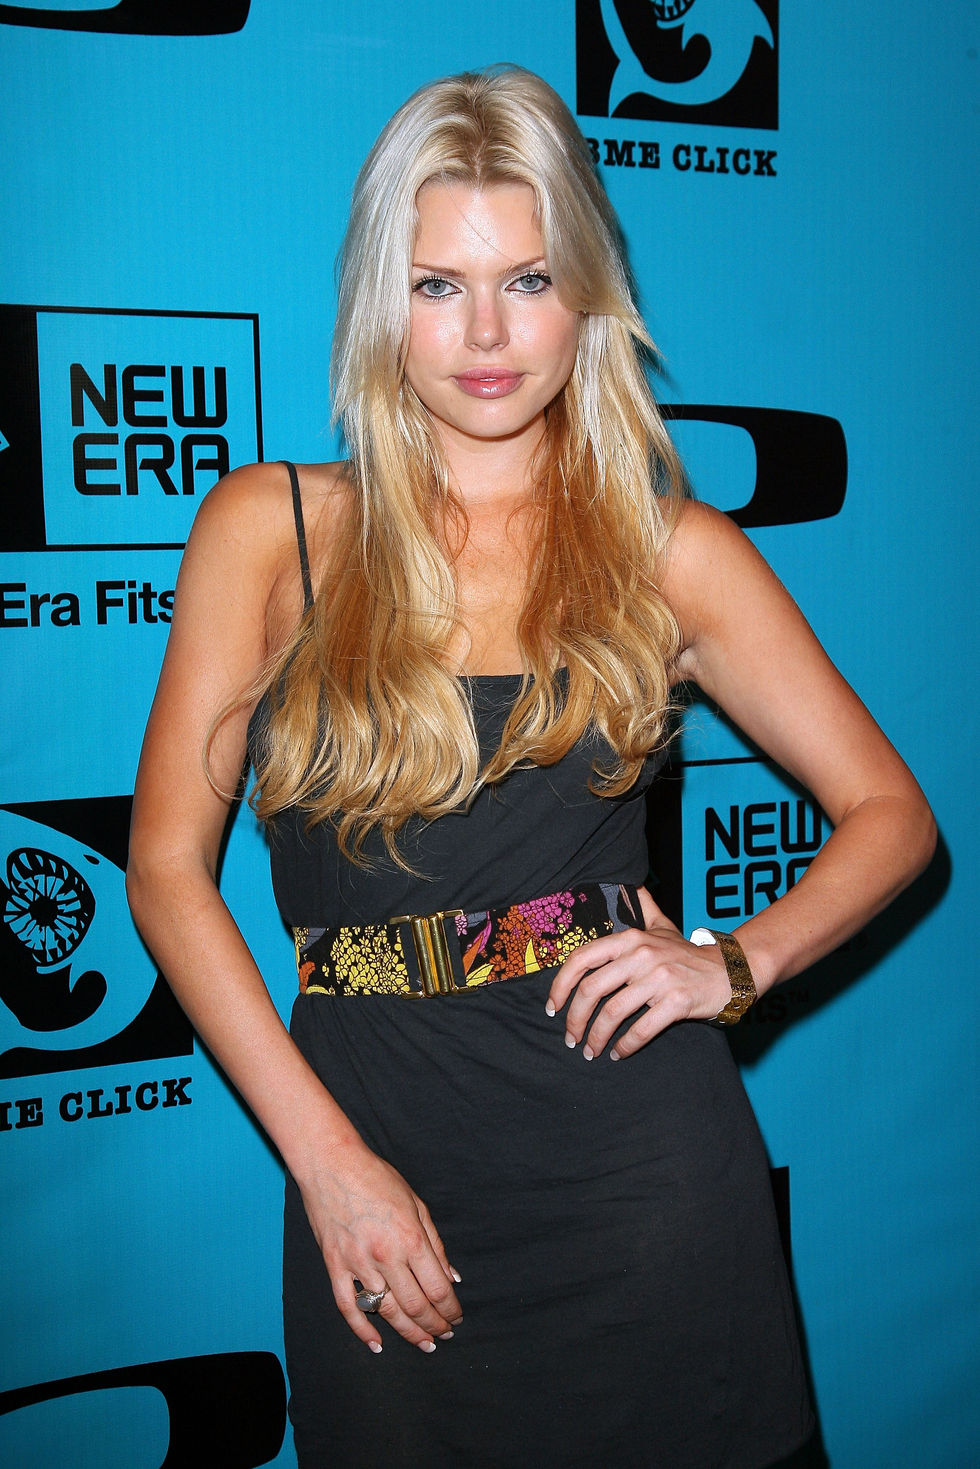 sophie-monk-oakley-and-new-era-x-games-xiv-pre-party-in-hollywood-01